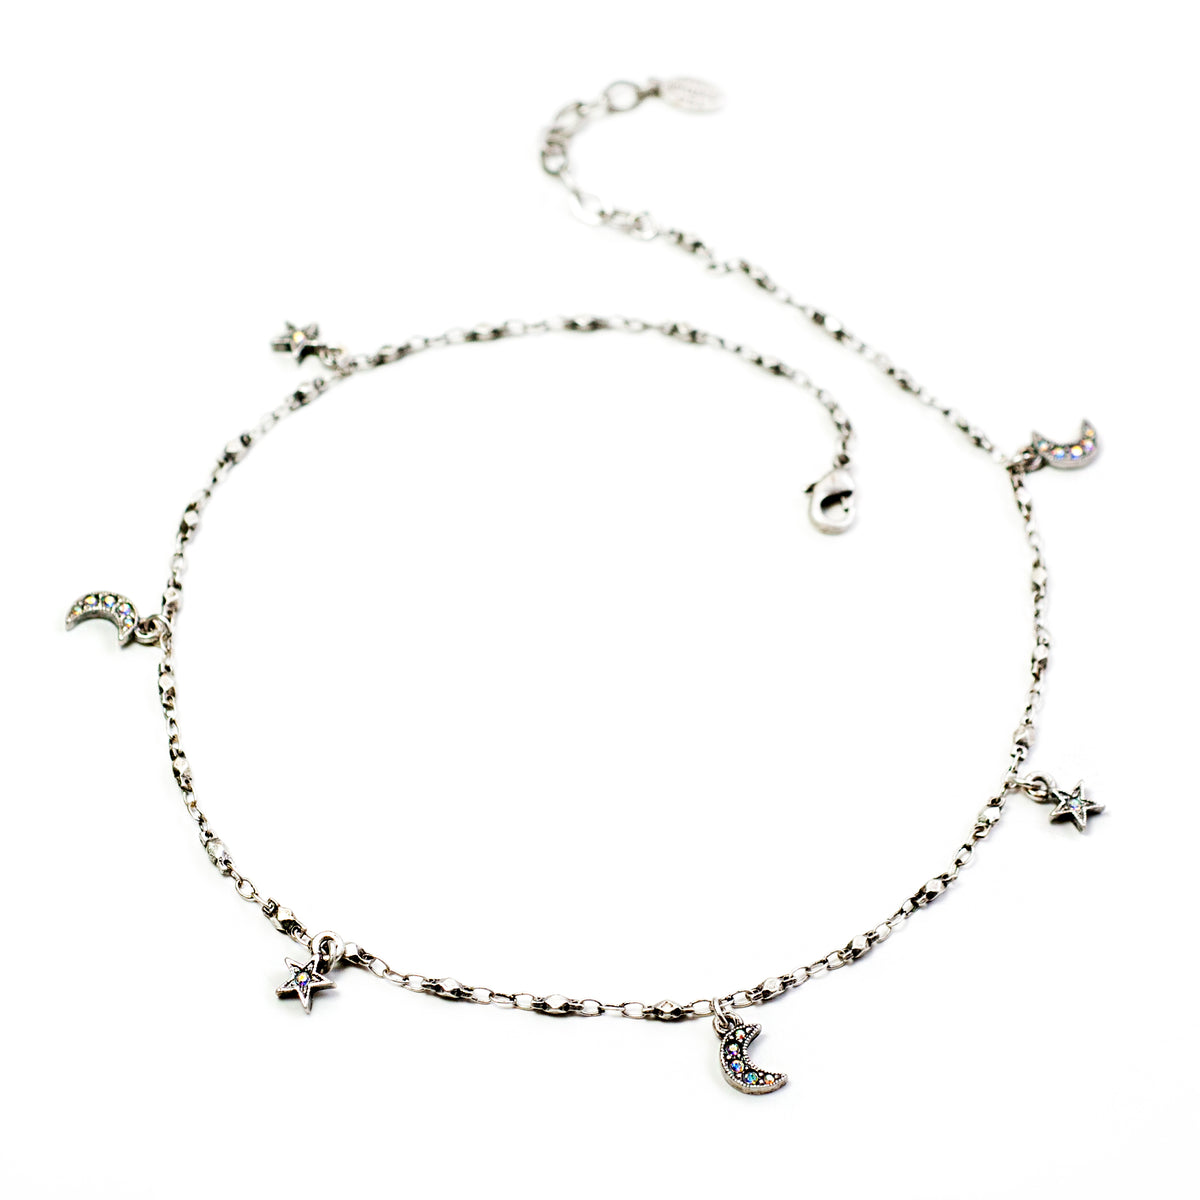 Star & Moon Charm Necklace N1629 - Sweet Romance Wholesale